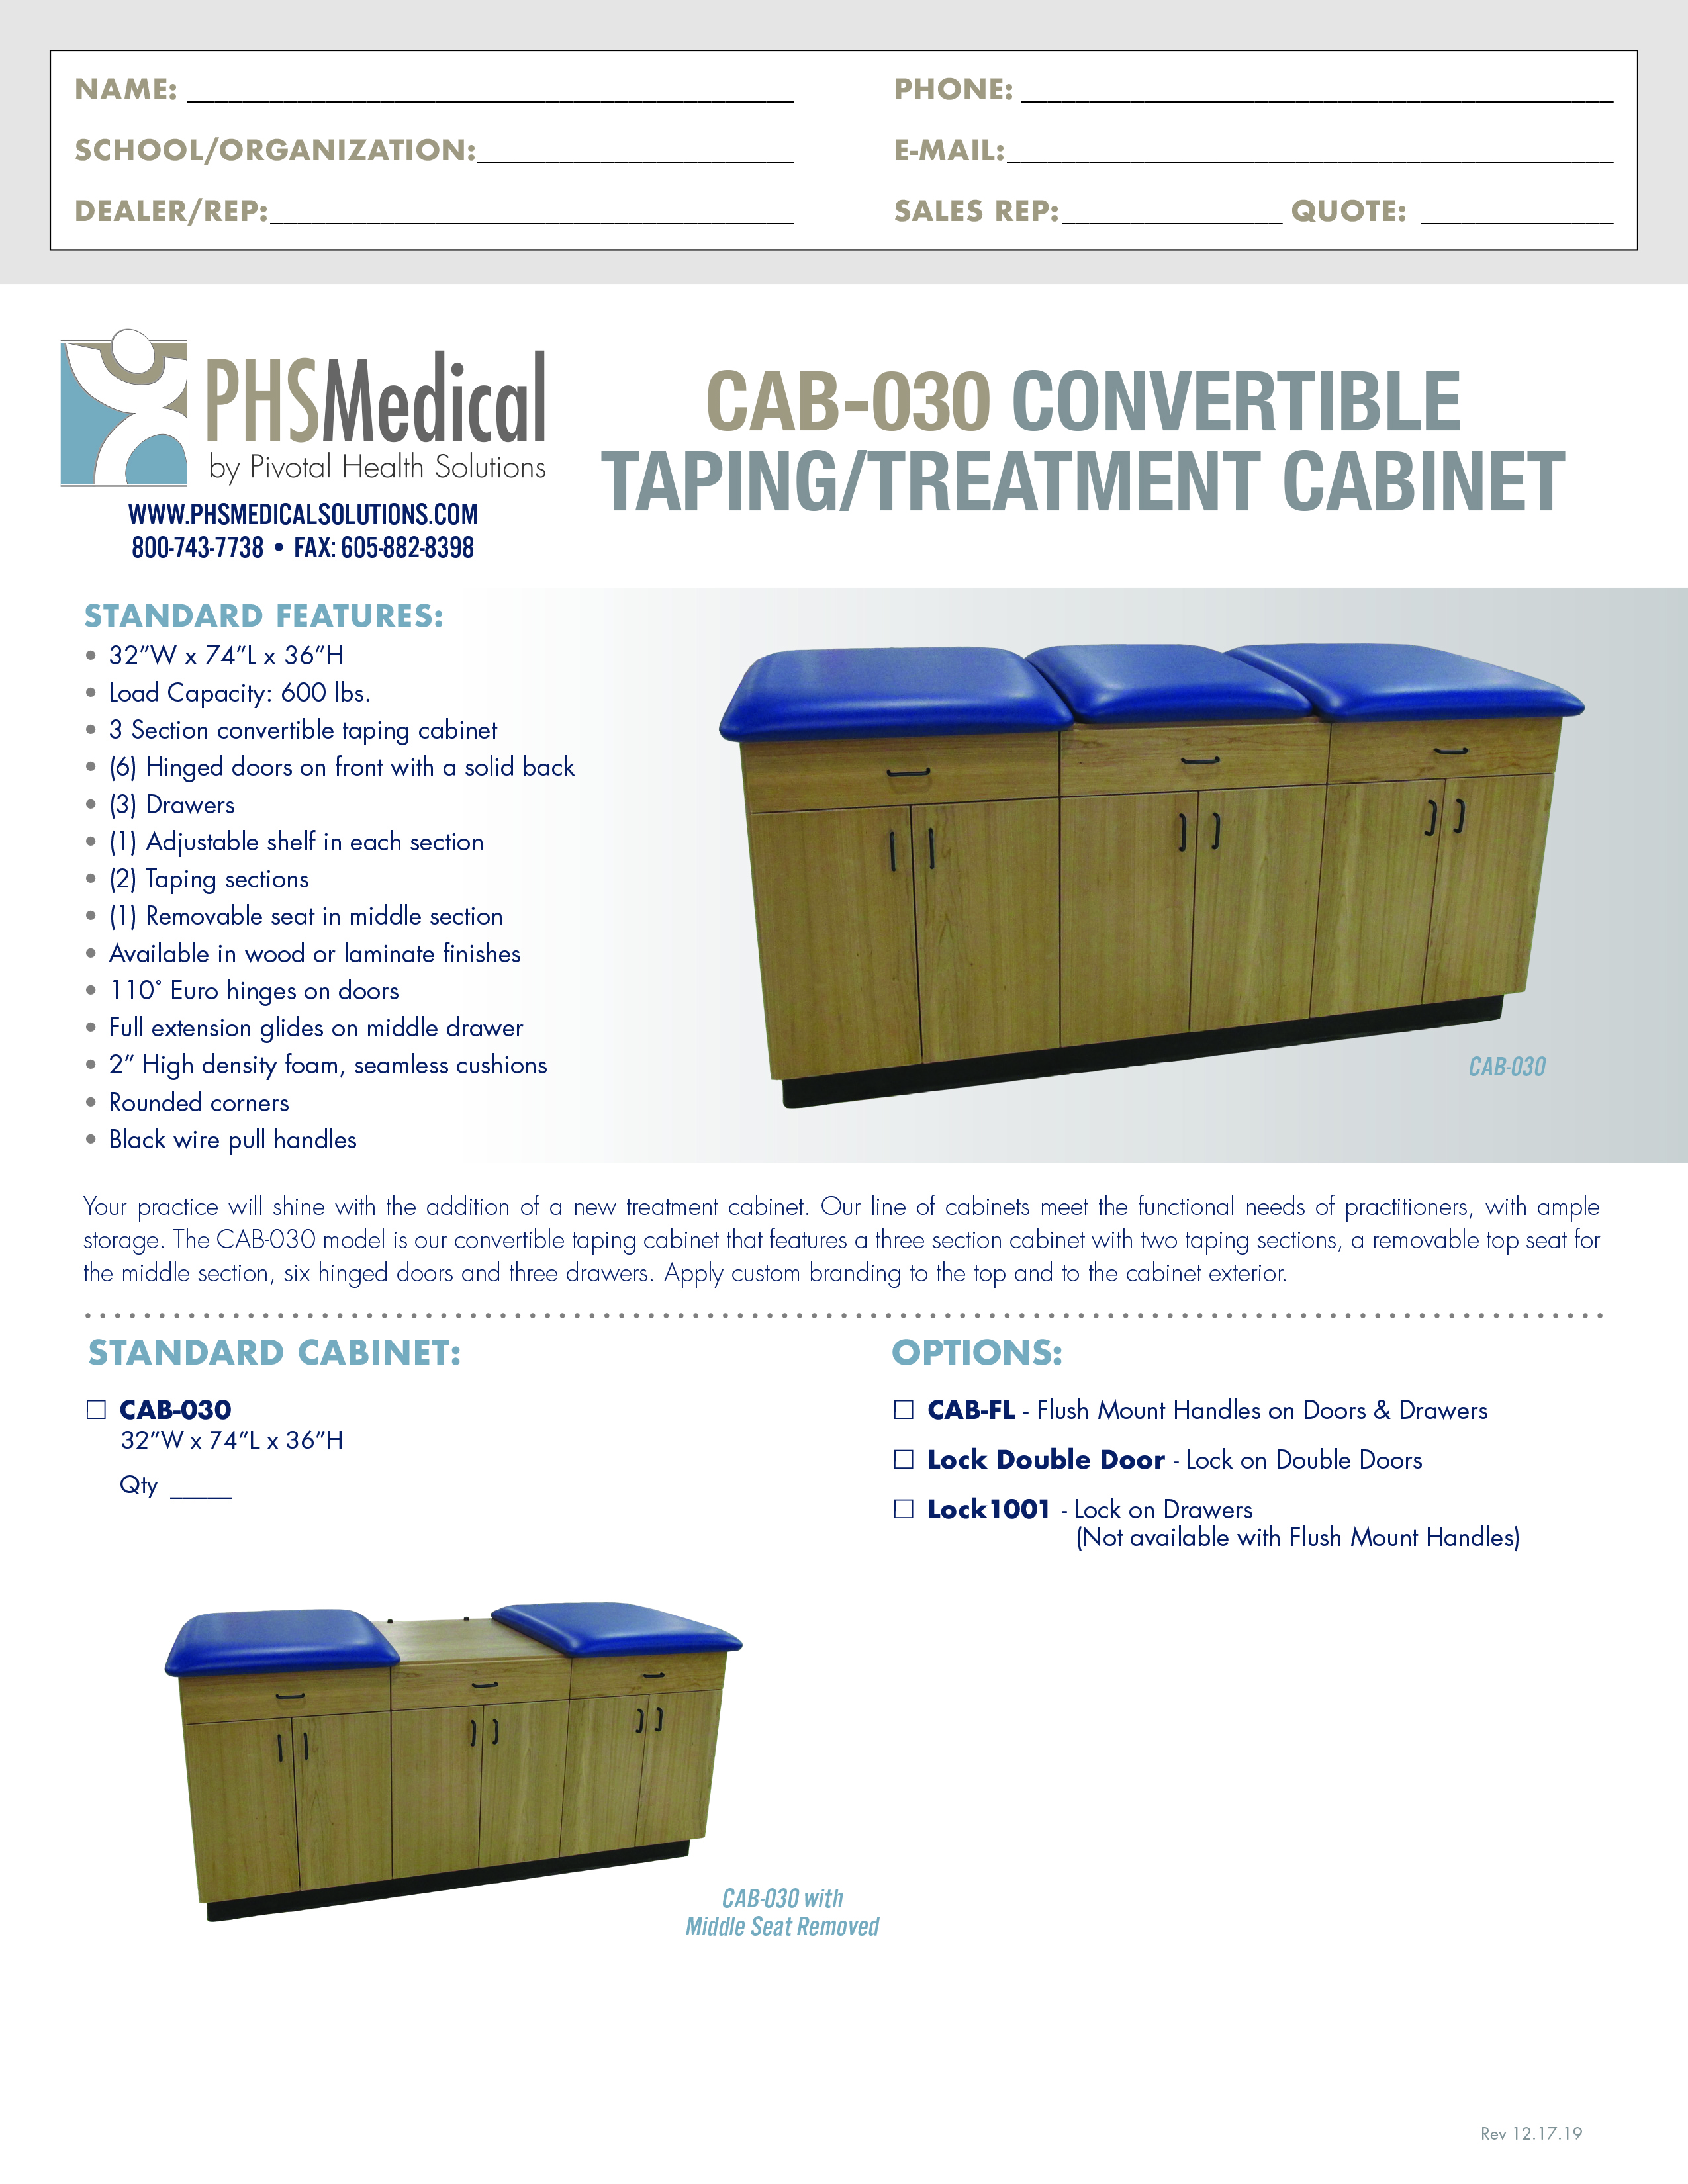 CAB-030 Convertible Taping/ Treatment Cabinet Data Sheet